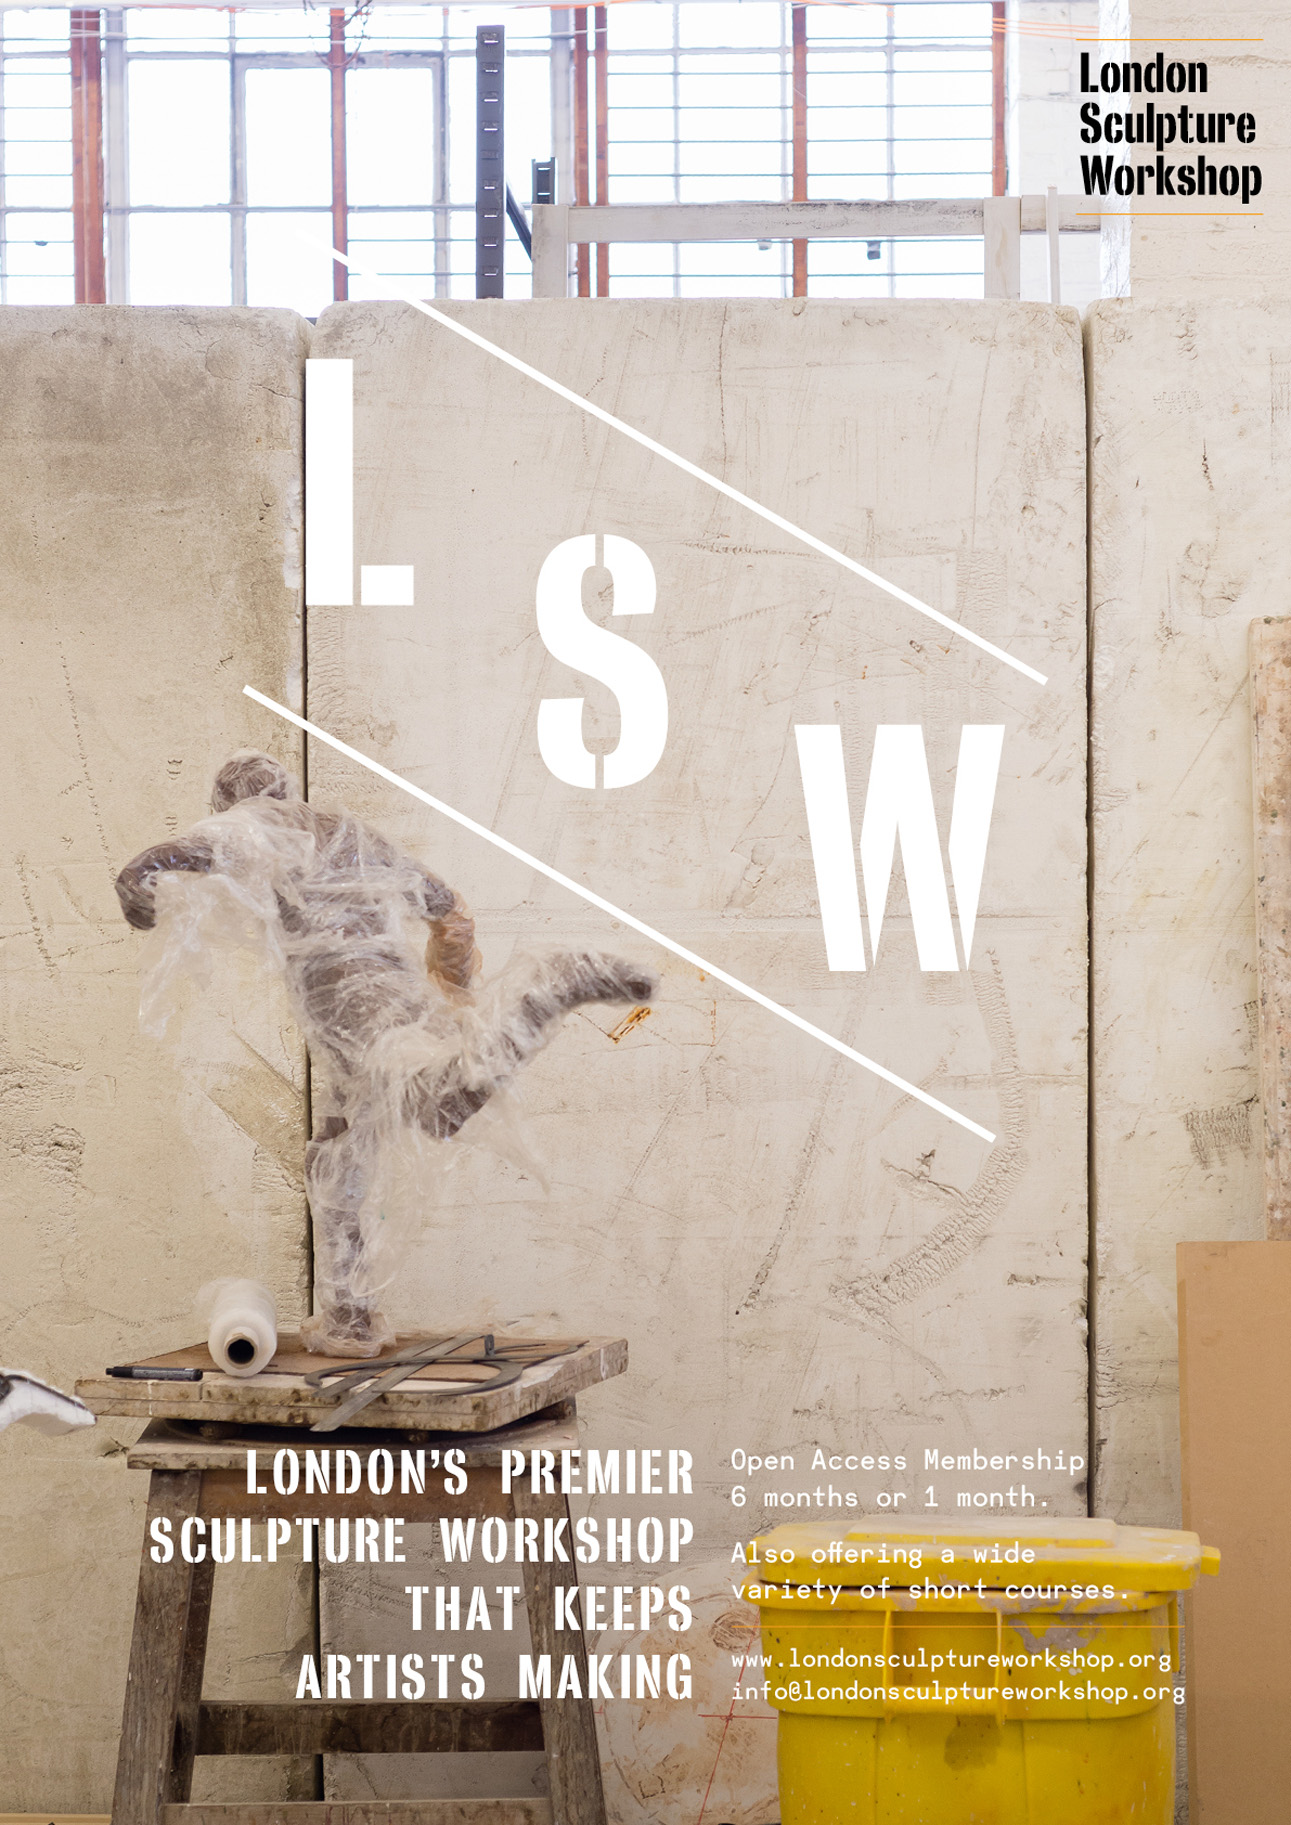 lswfinal_poster_big_2_0.jpg - An industrial identity for London Sculpture Workshop - 6551